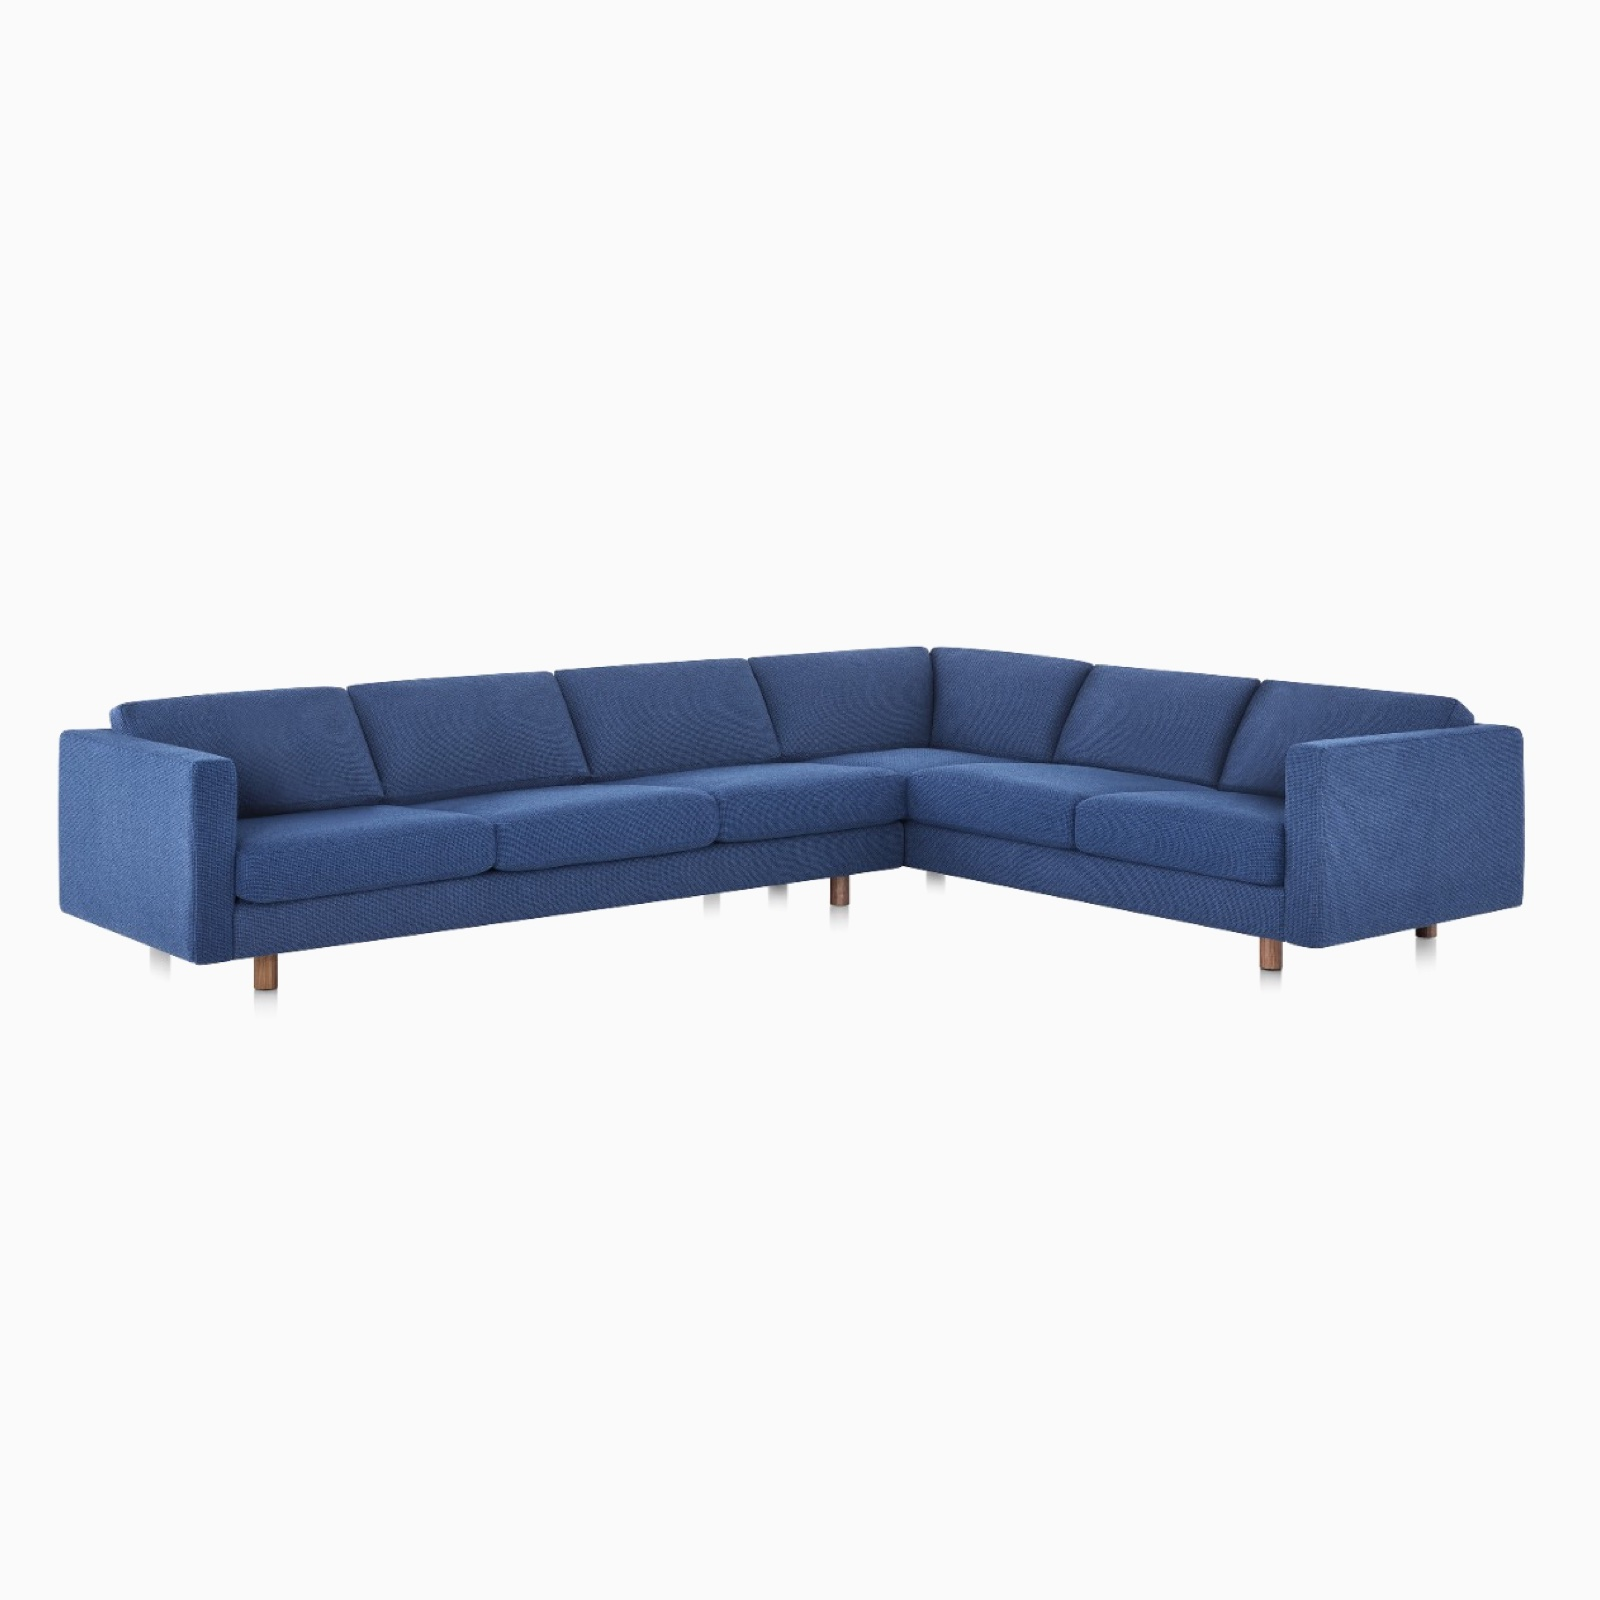 A Lispendard Sectional Sofa in Superweave Marine.